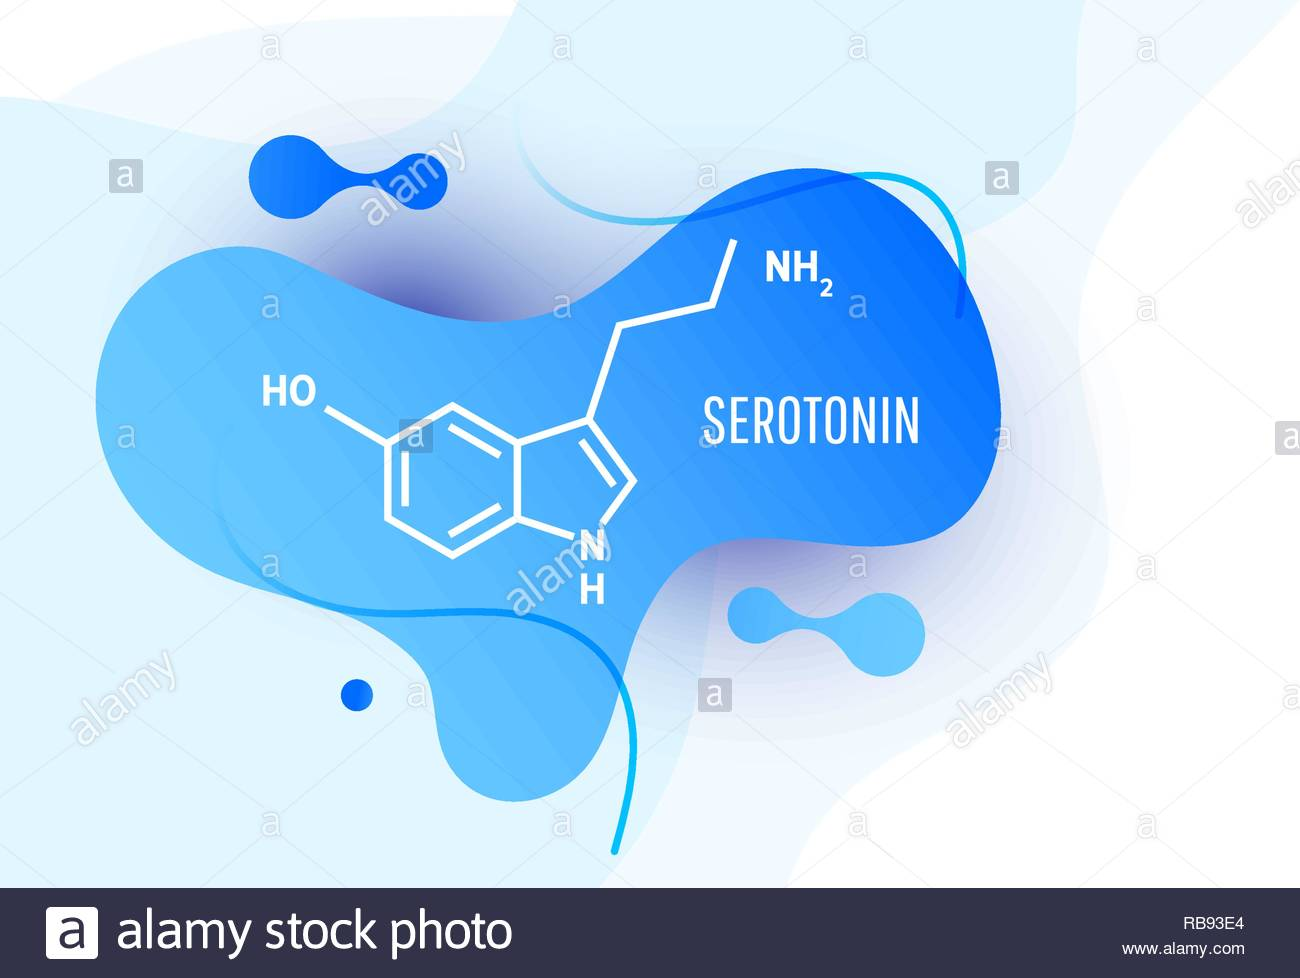 Serotonin hormone structural chemical formula on blue background 1300x978